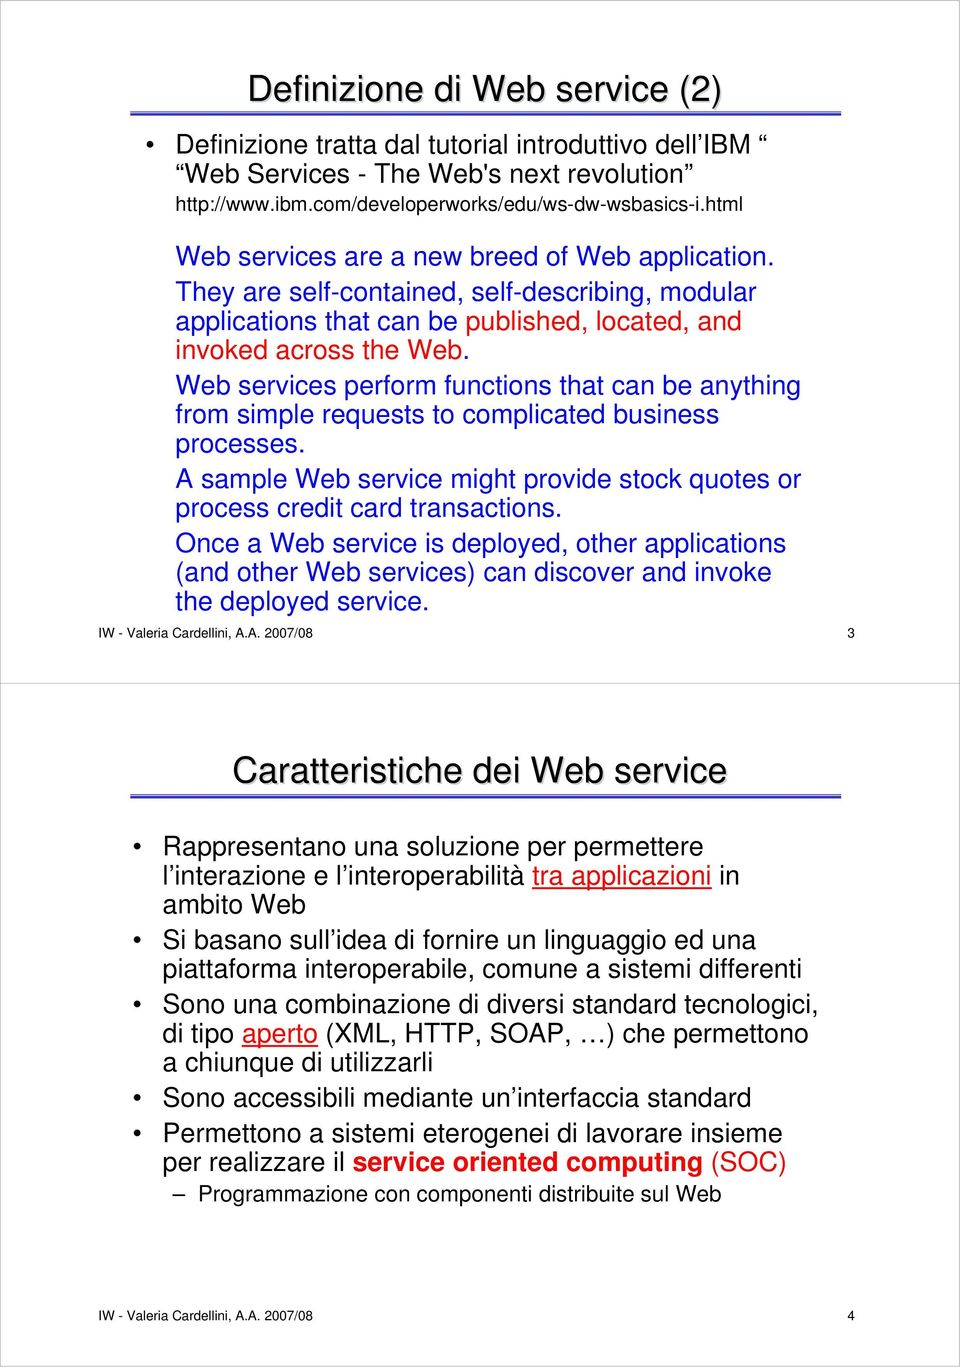 Web services perform functions that can be anything from simple requests to complicated business processes. A sample Web service might provide stock quotes or process credit card transactions.